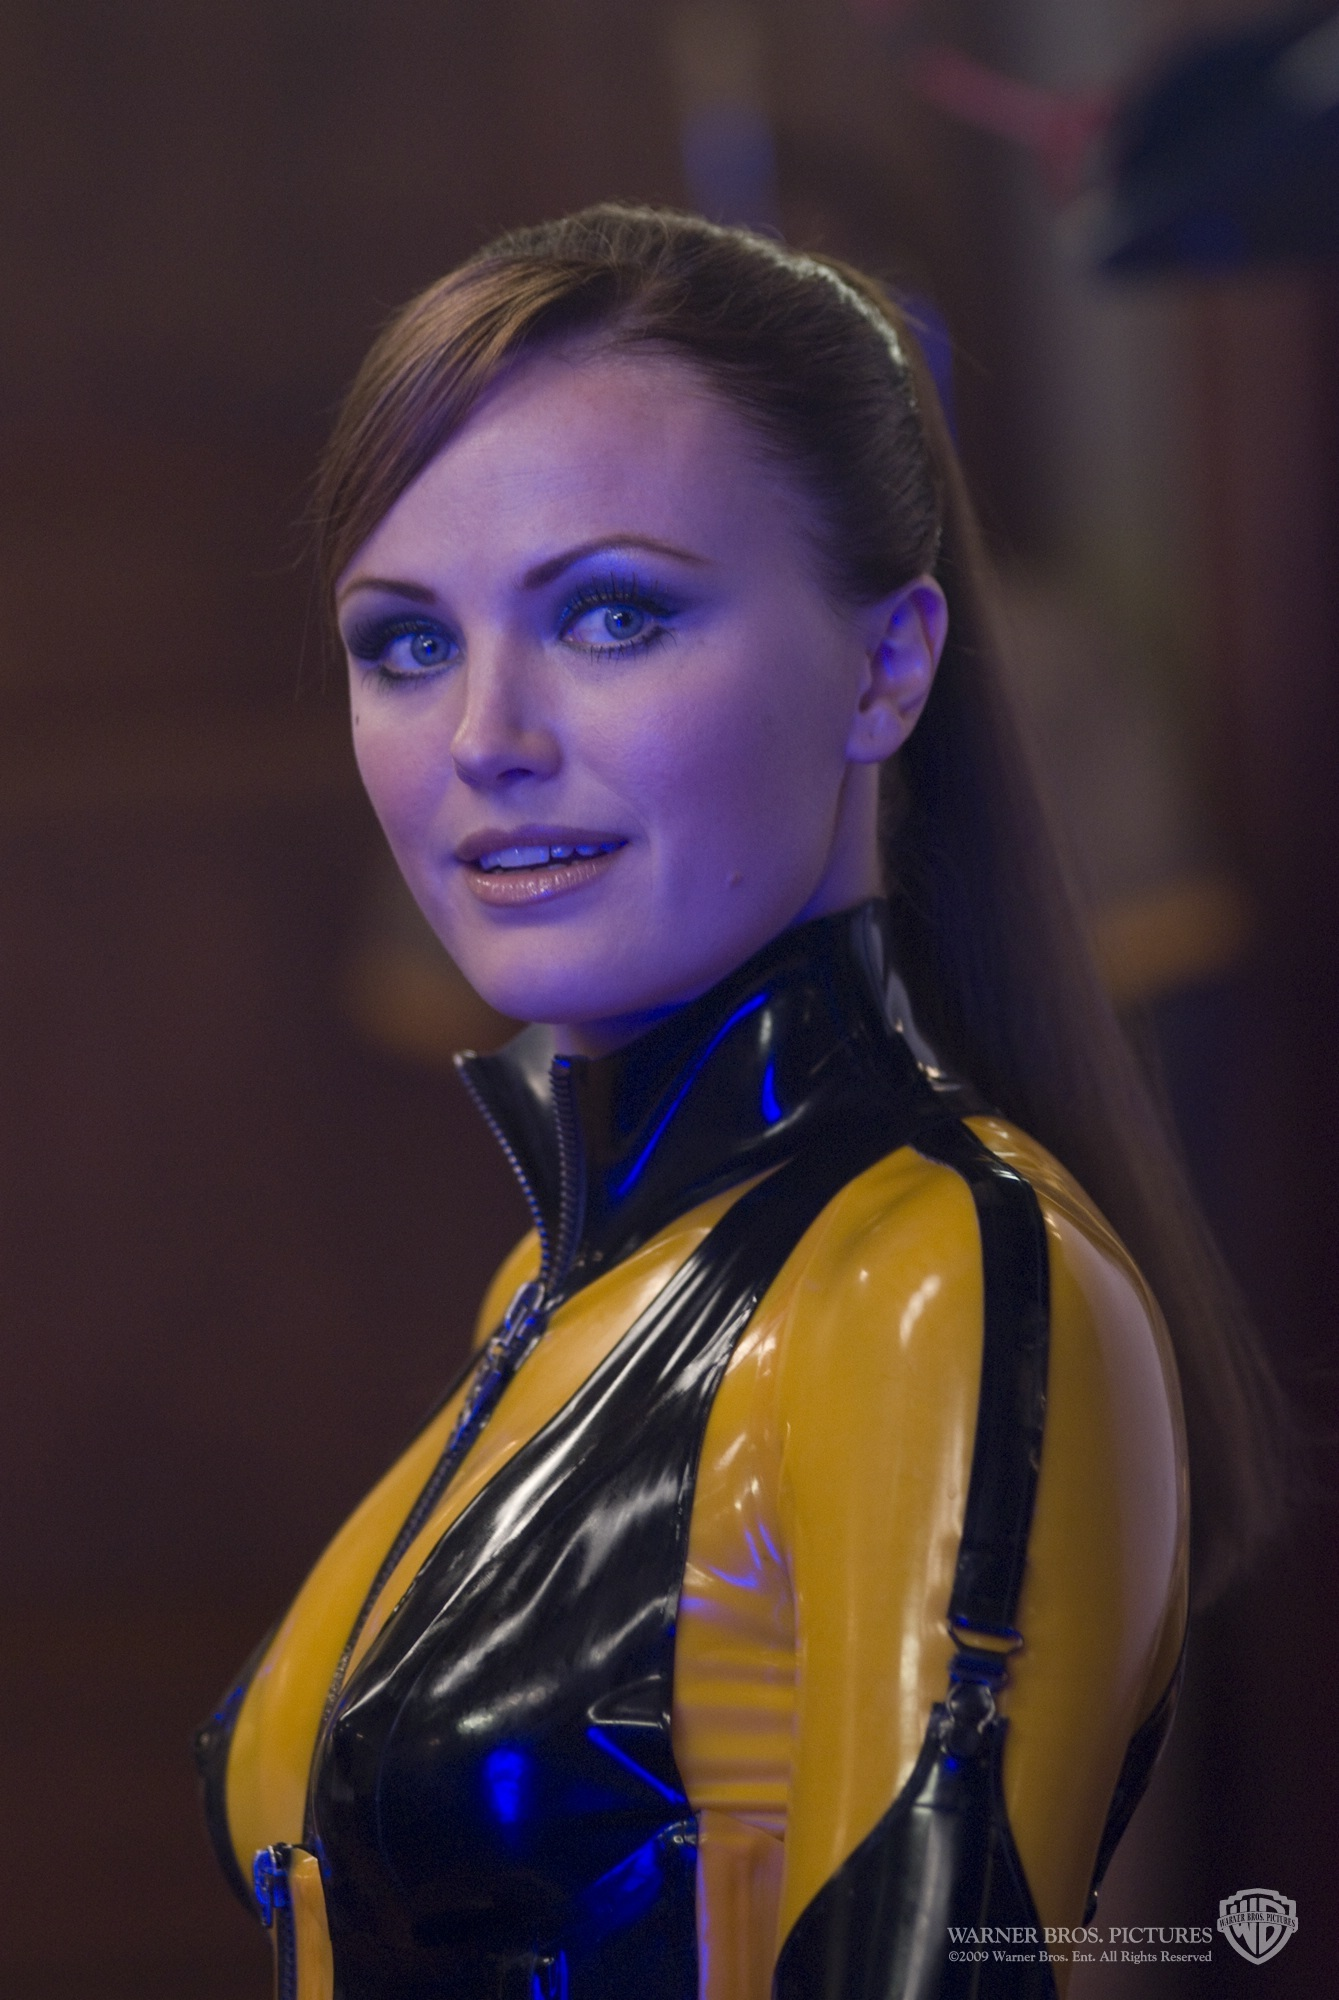 LOVING Watchmen silk spectre porn love